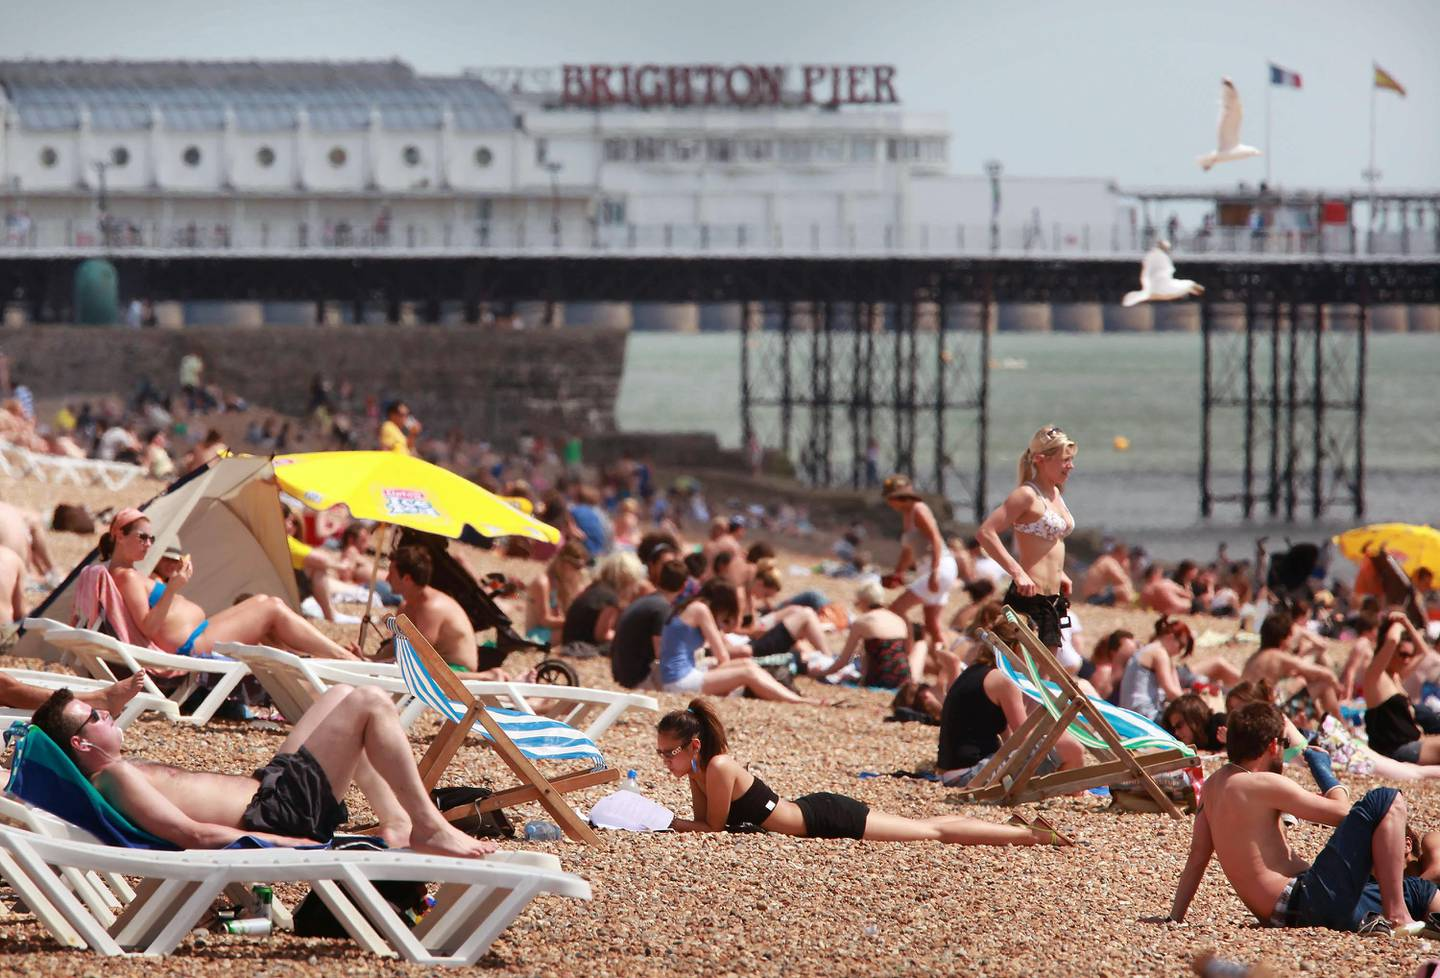 BRIGHTON, UNITED KINGDOM - JUNE 01:  Sun bathers enjoy the sea front on June 1, 2009 in Brighton, England. The United Kingdom is enjoying a blisteringly hot start to the summer with temperatures reaching as high as 25 centigrade in London.  (Photo by Peter Macdiarmid/Getty Images)